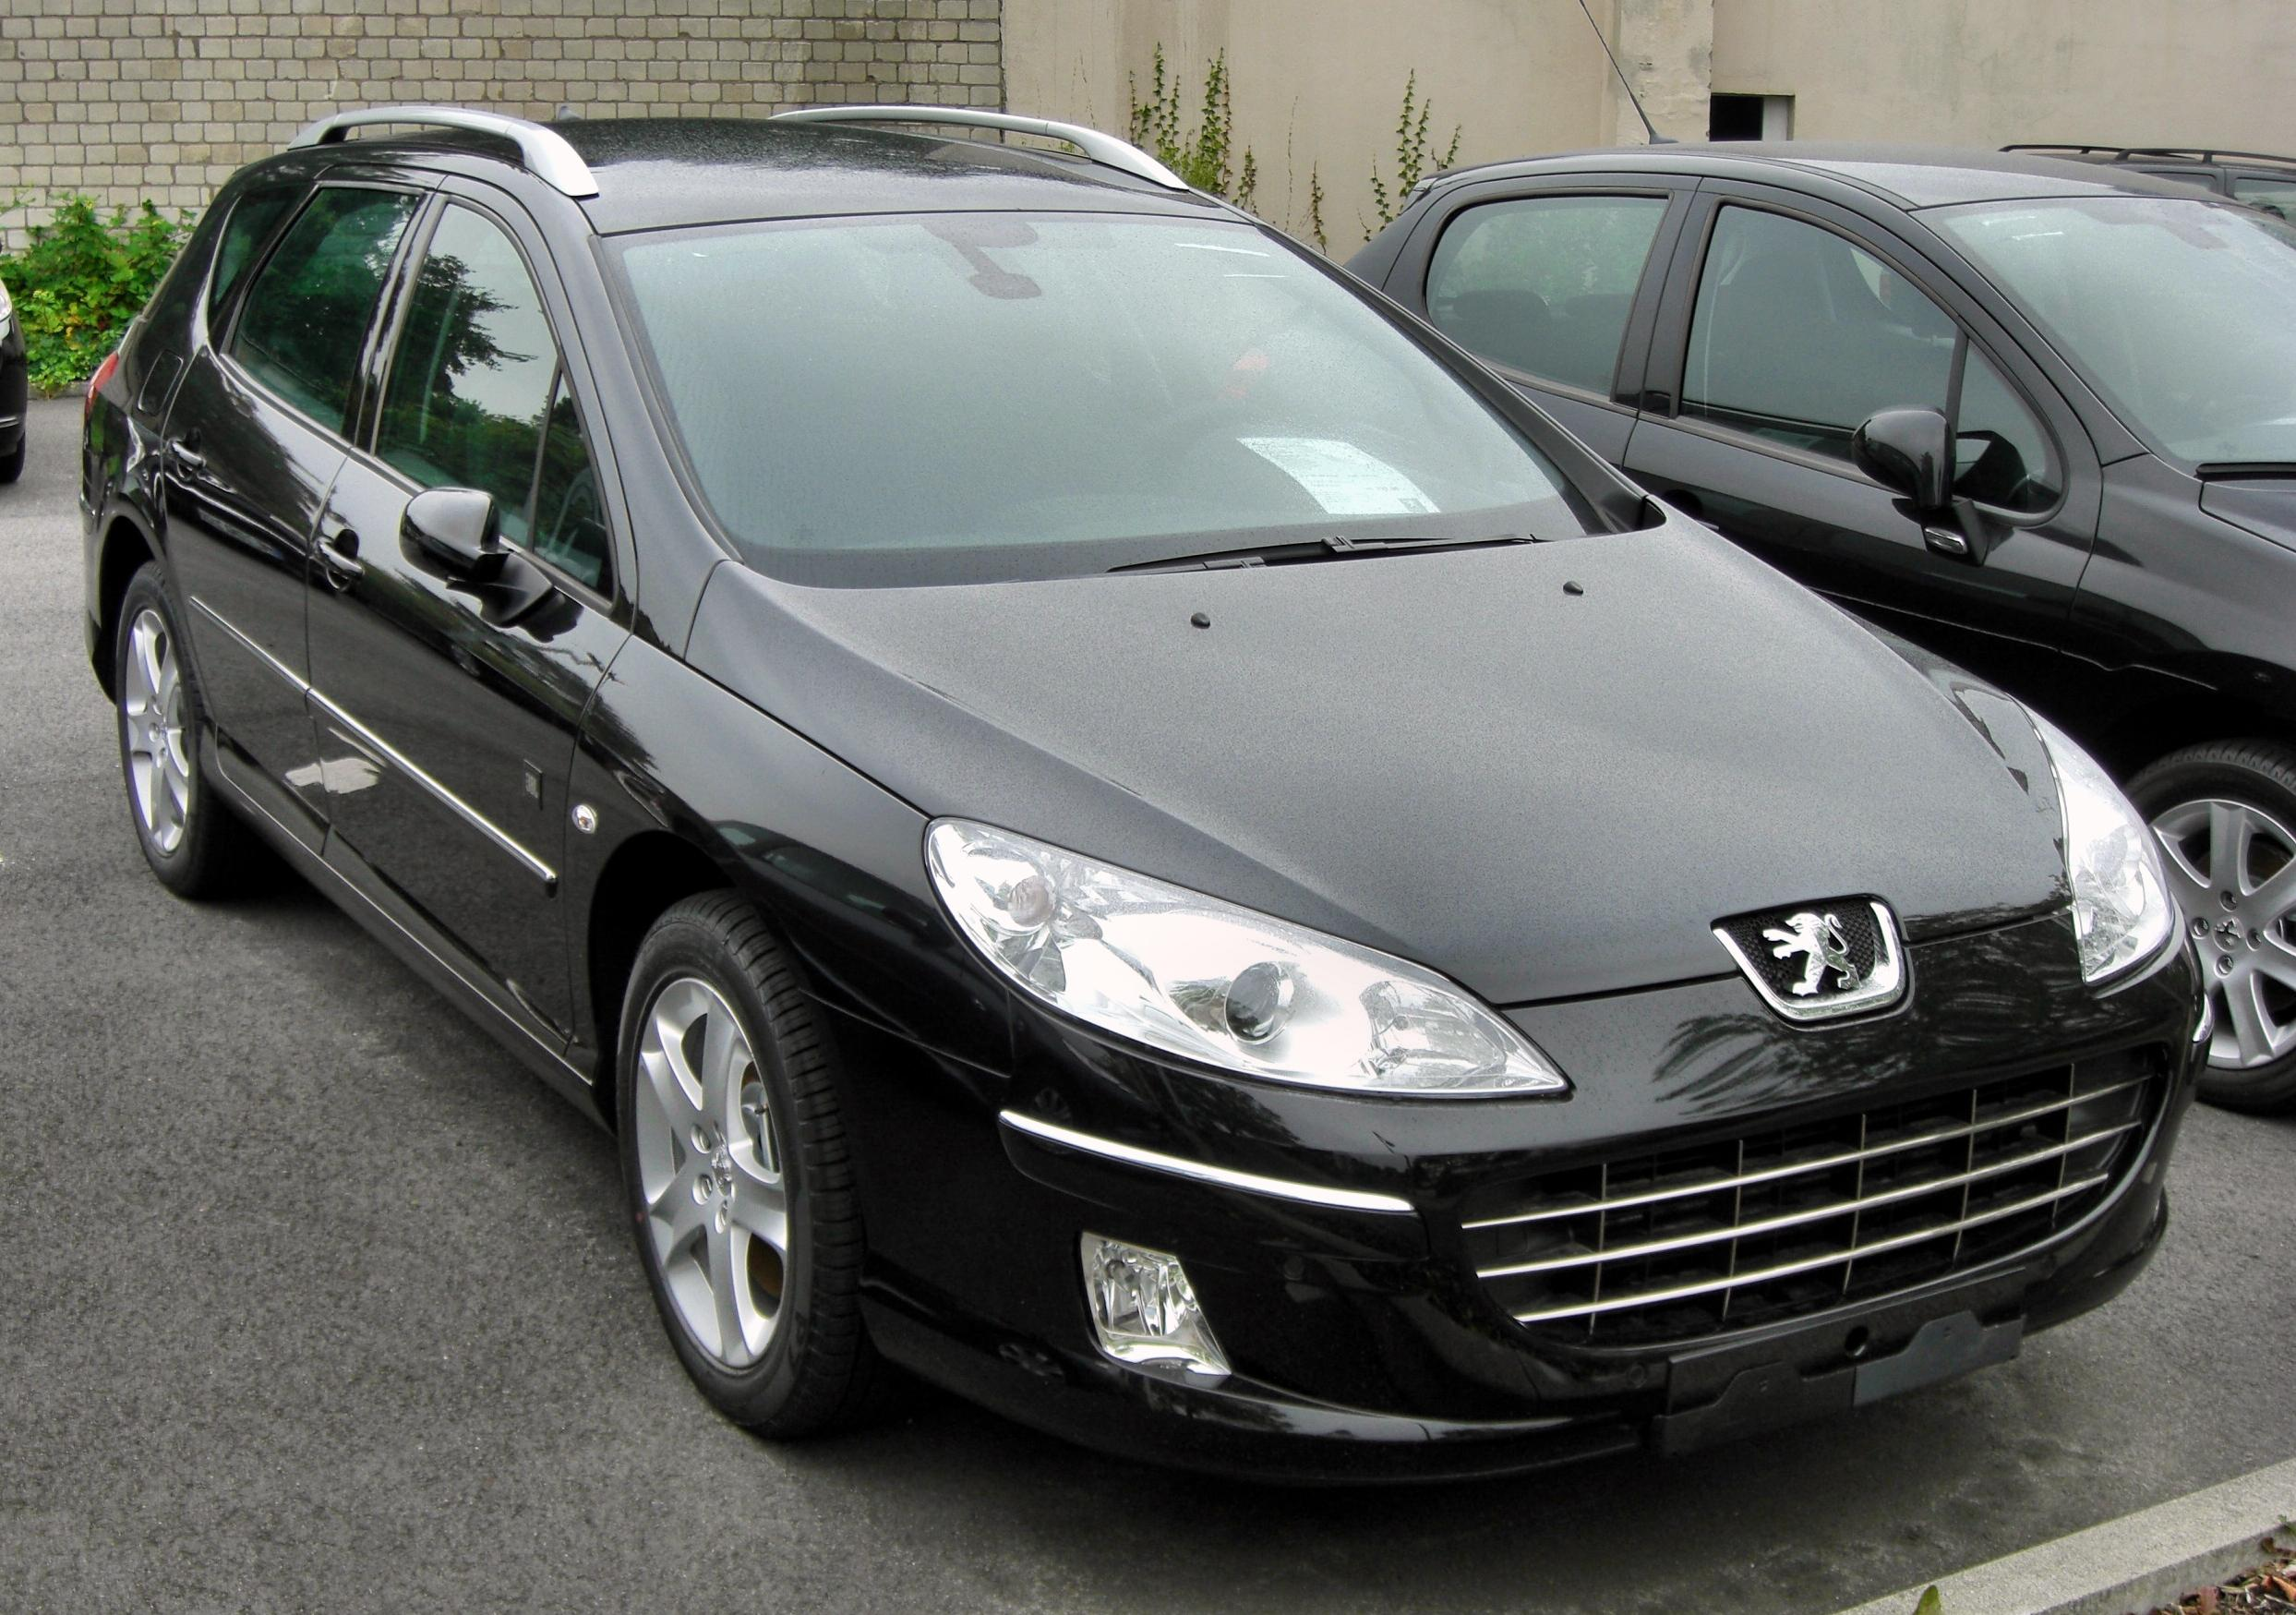 2009 peugeot 407 sw pictures information and specs auto. Black Bedroom Furniture Sets. Home Design Ideas